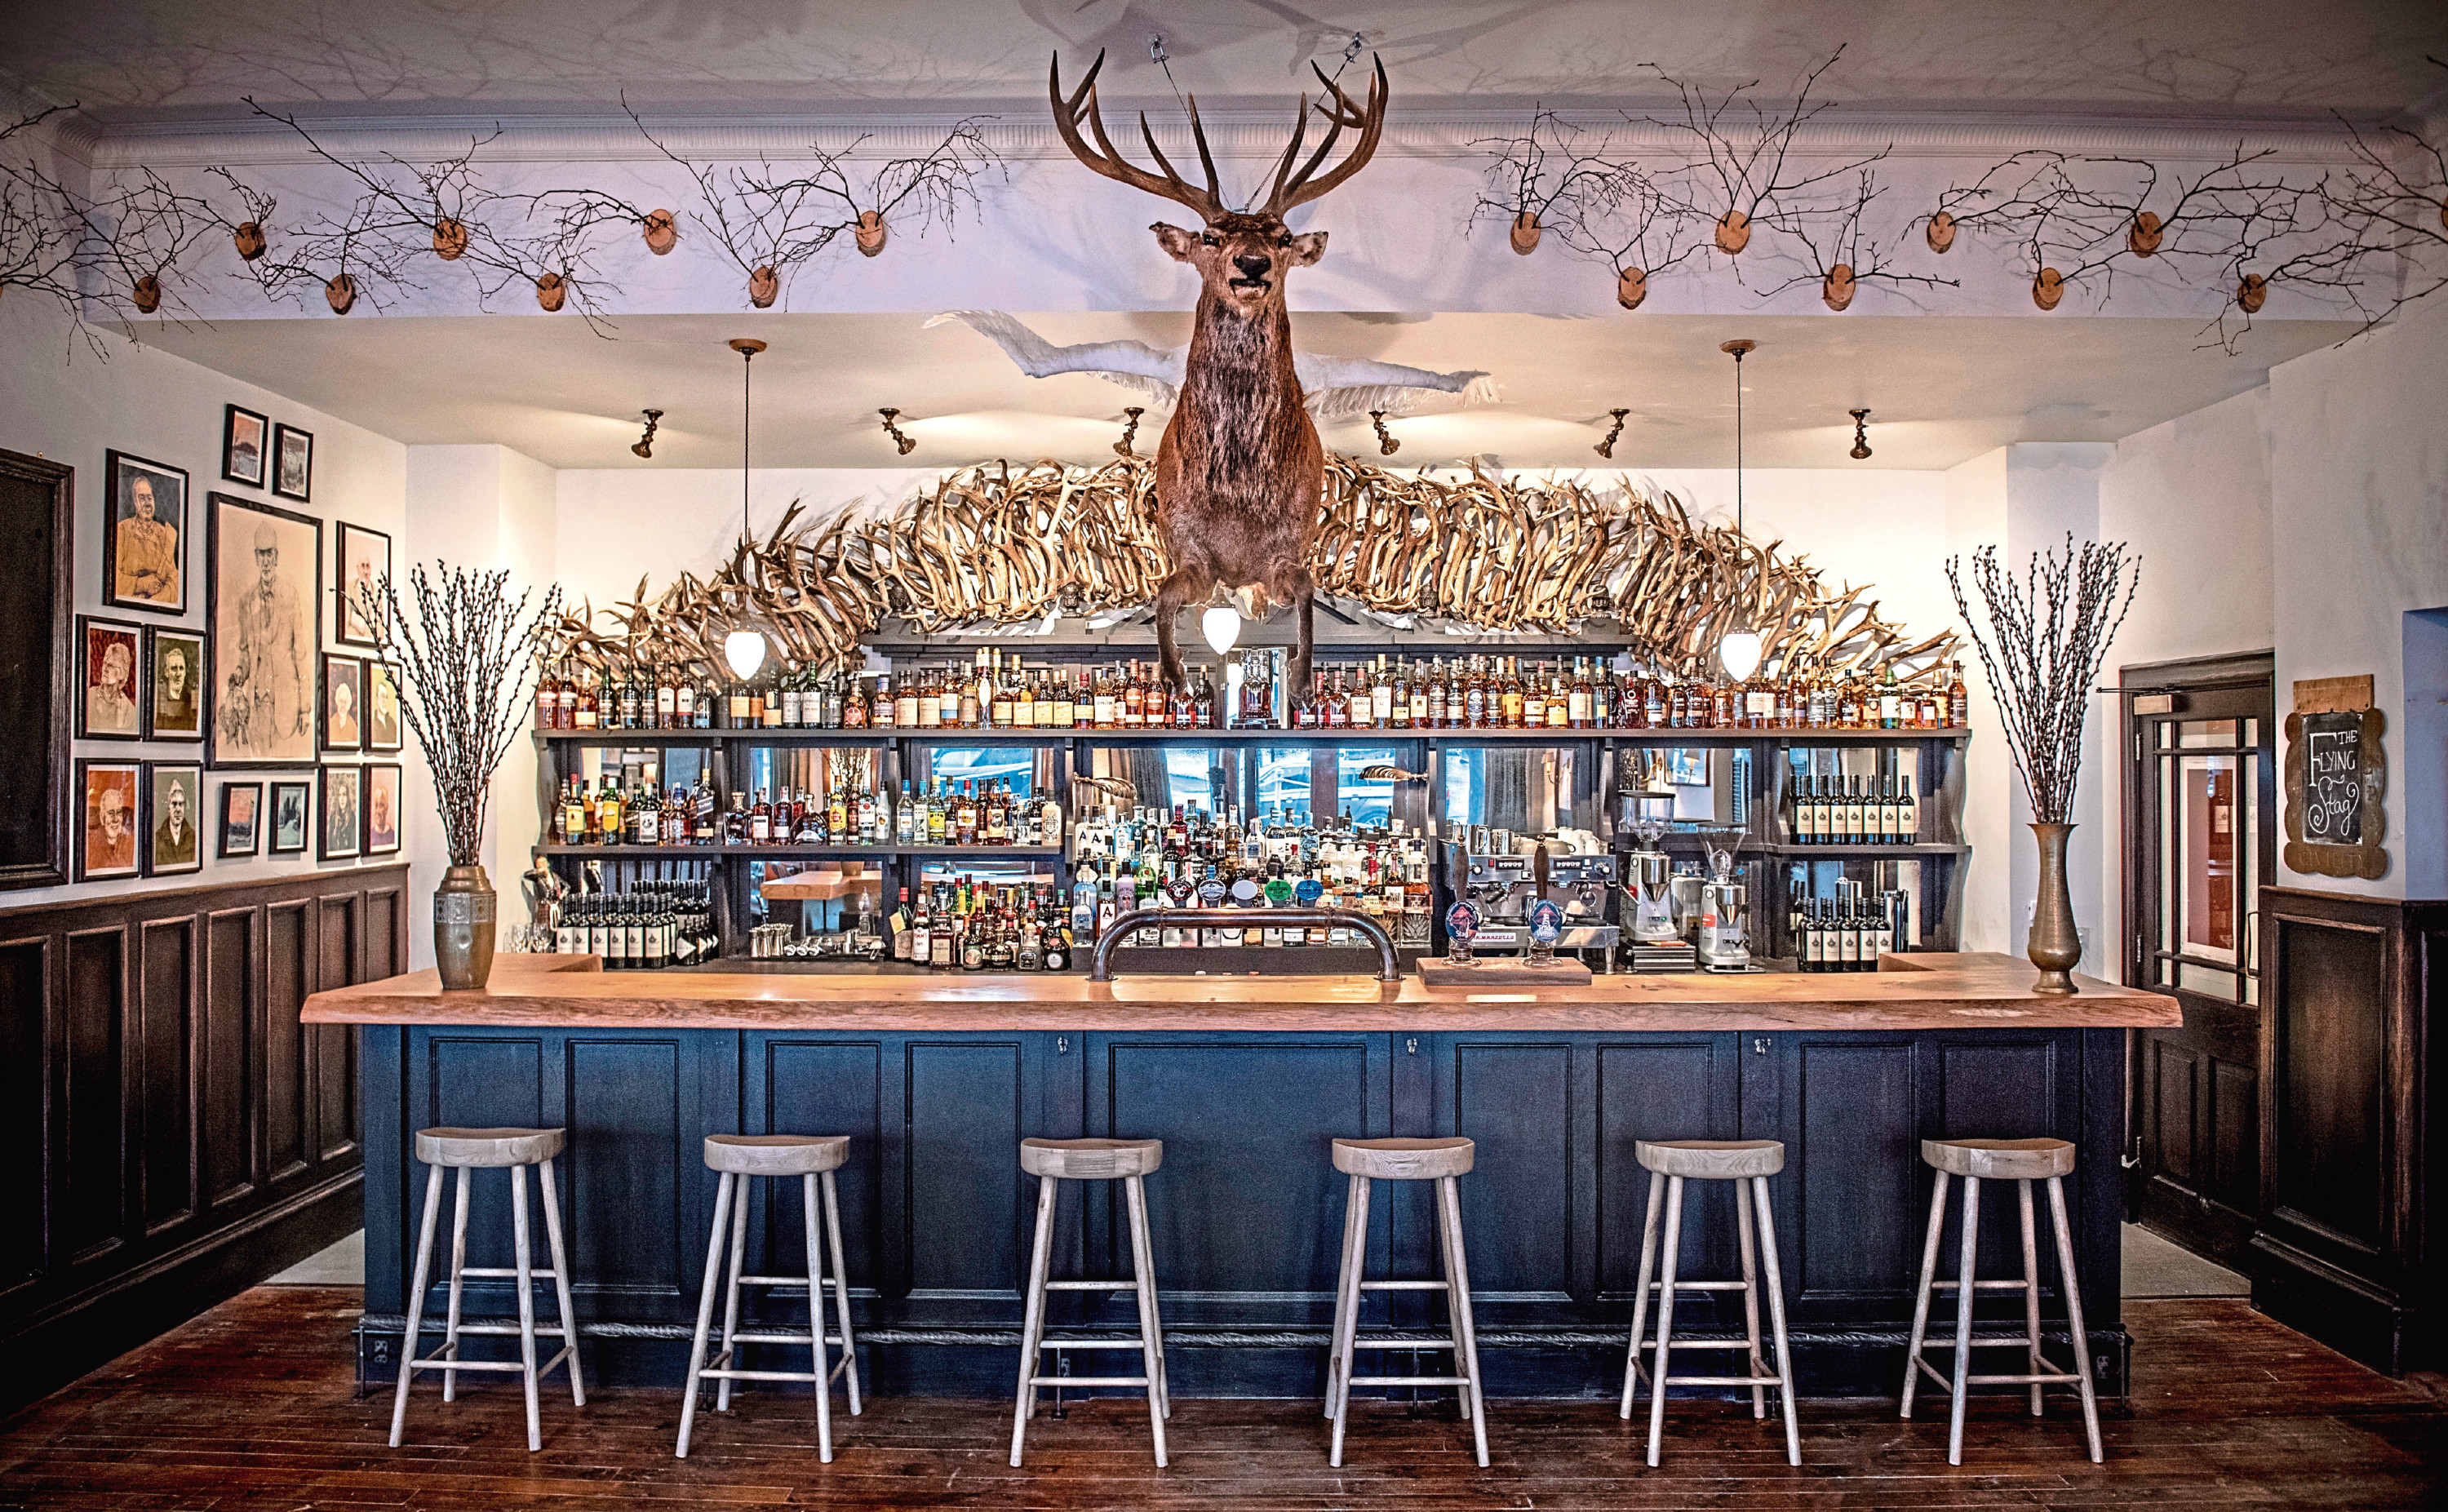 The Fife Arms, Braemar - The Flying Stag Public Bar